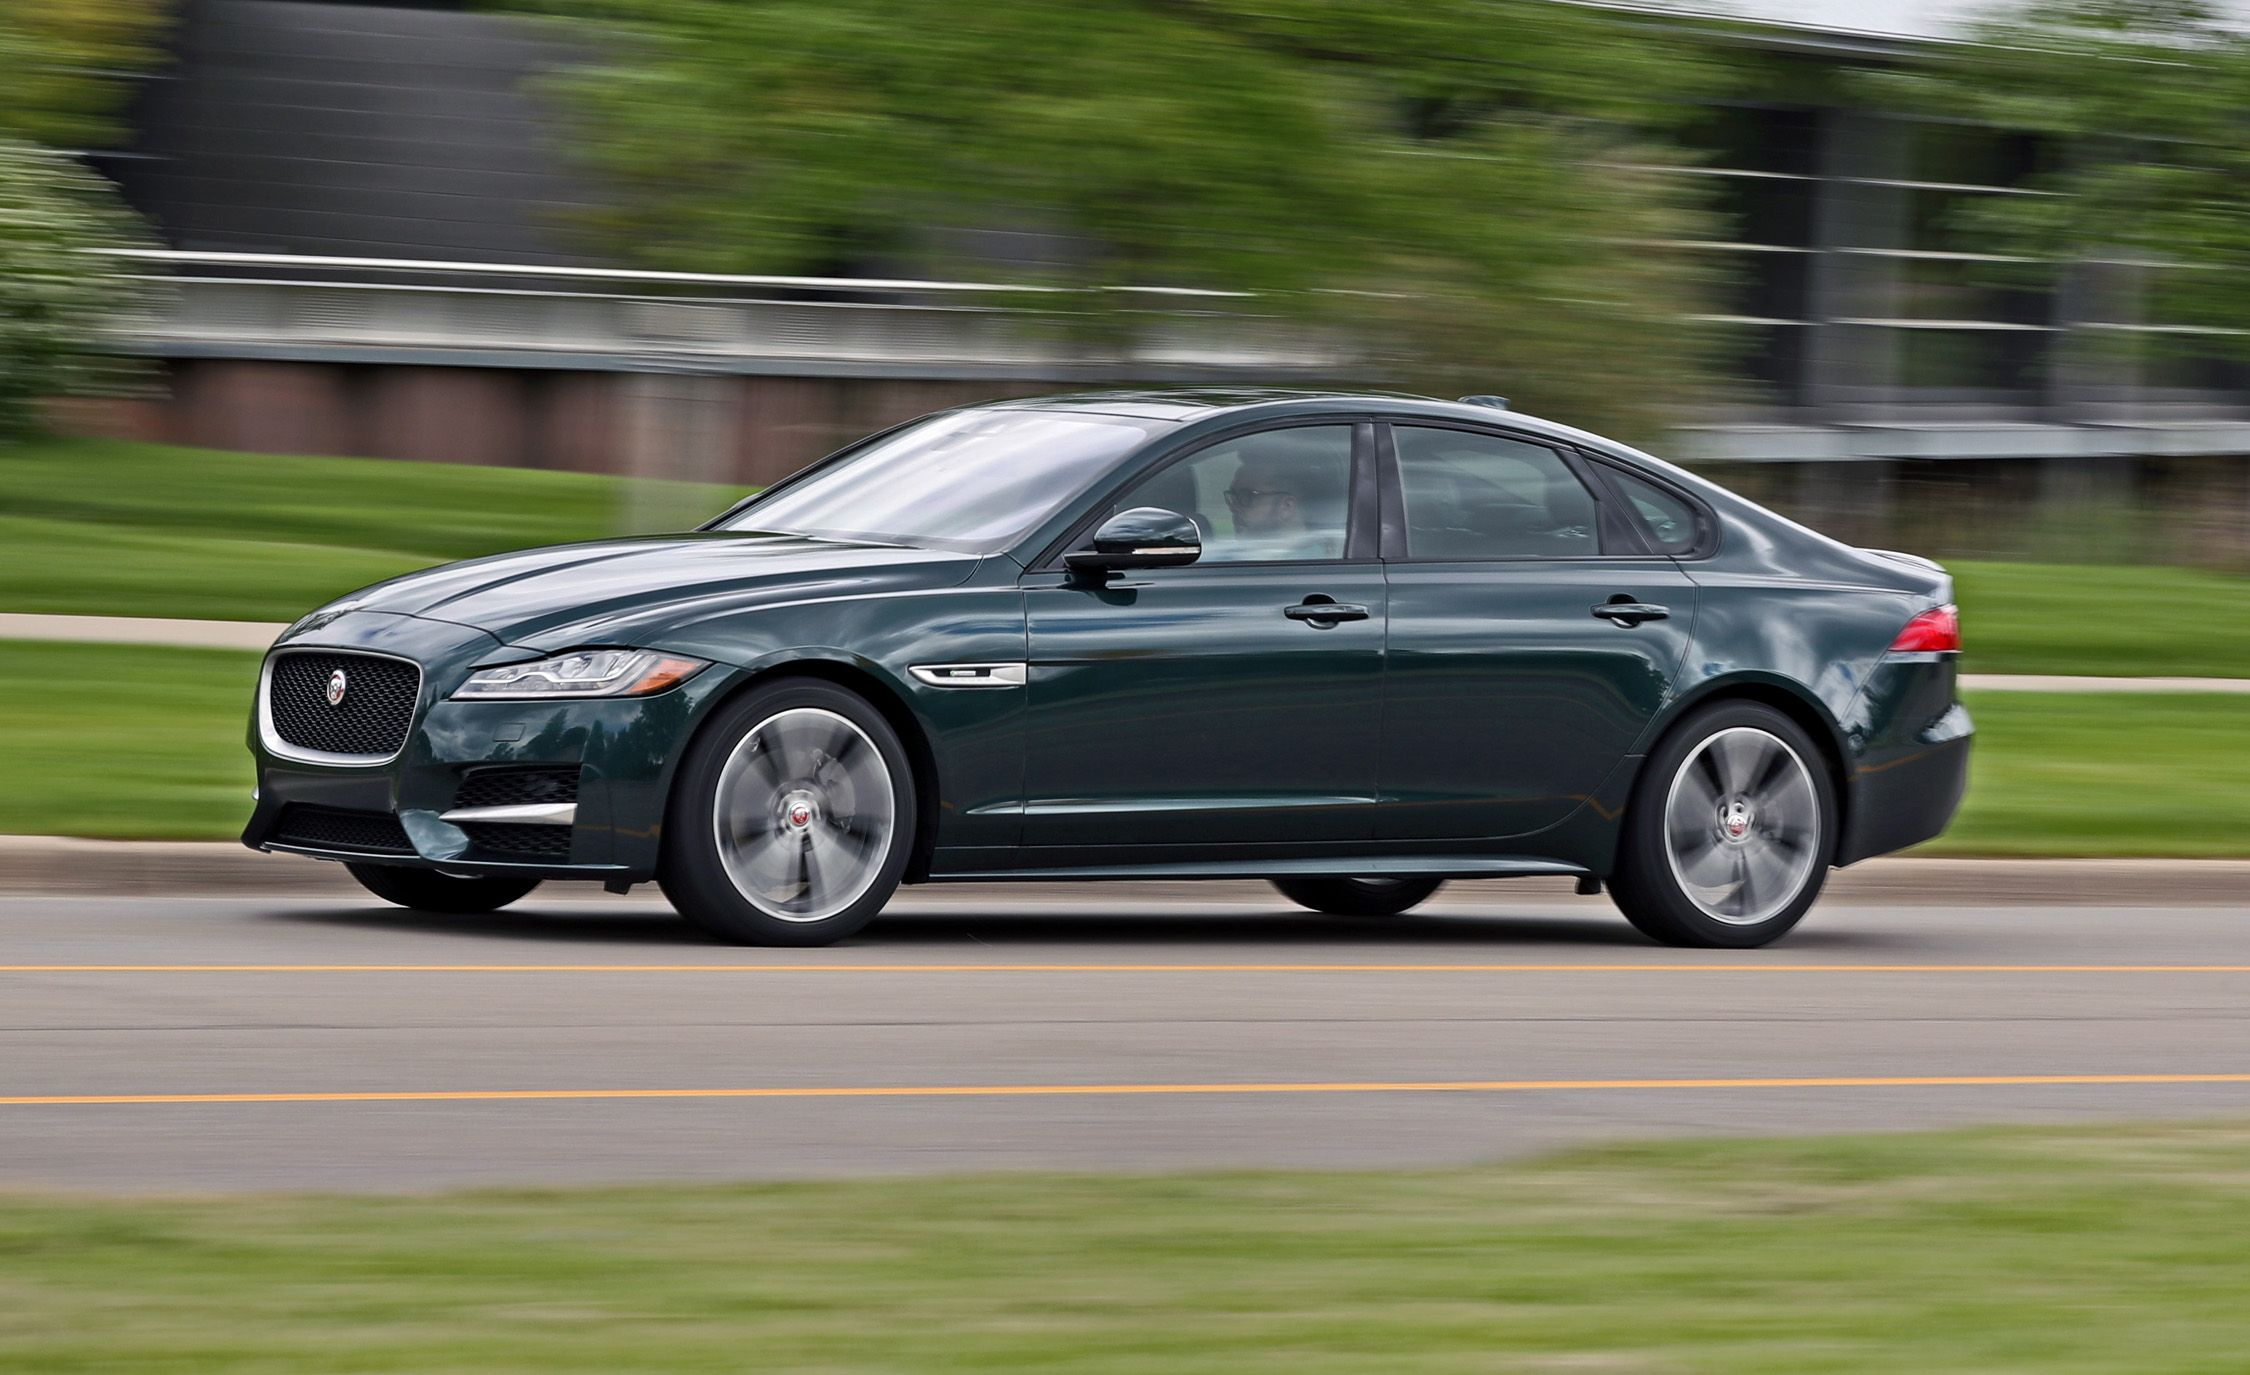 jaguar xf reviews jaguar xf price photos and specs car and driver. Black Bedroom Furniture Sets. Home Design Ideas